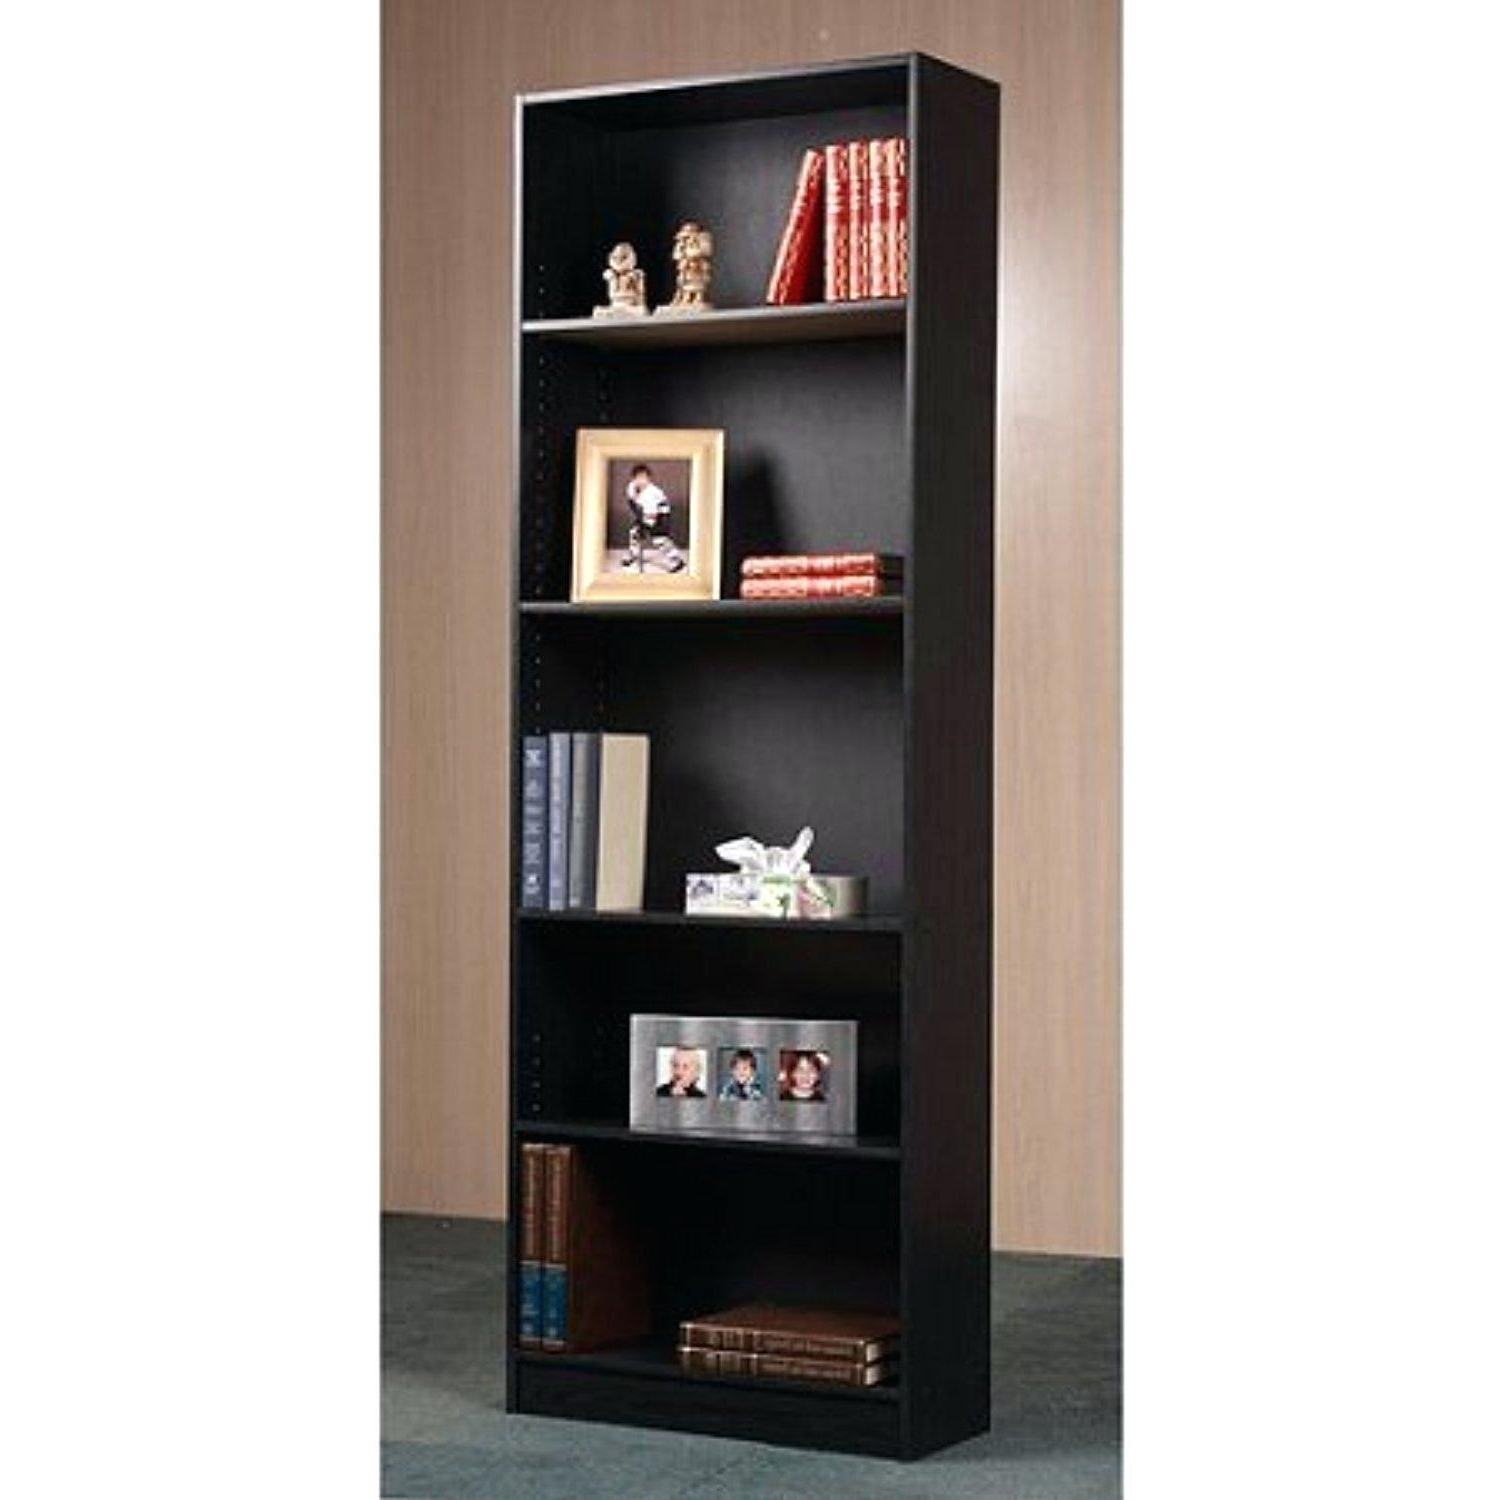 40 Inch Wide Bookcase – Zivile Regarding Most Current 40 Inch Wide Bookcases (Gallery 12 of 15)